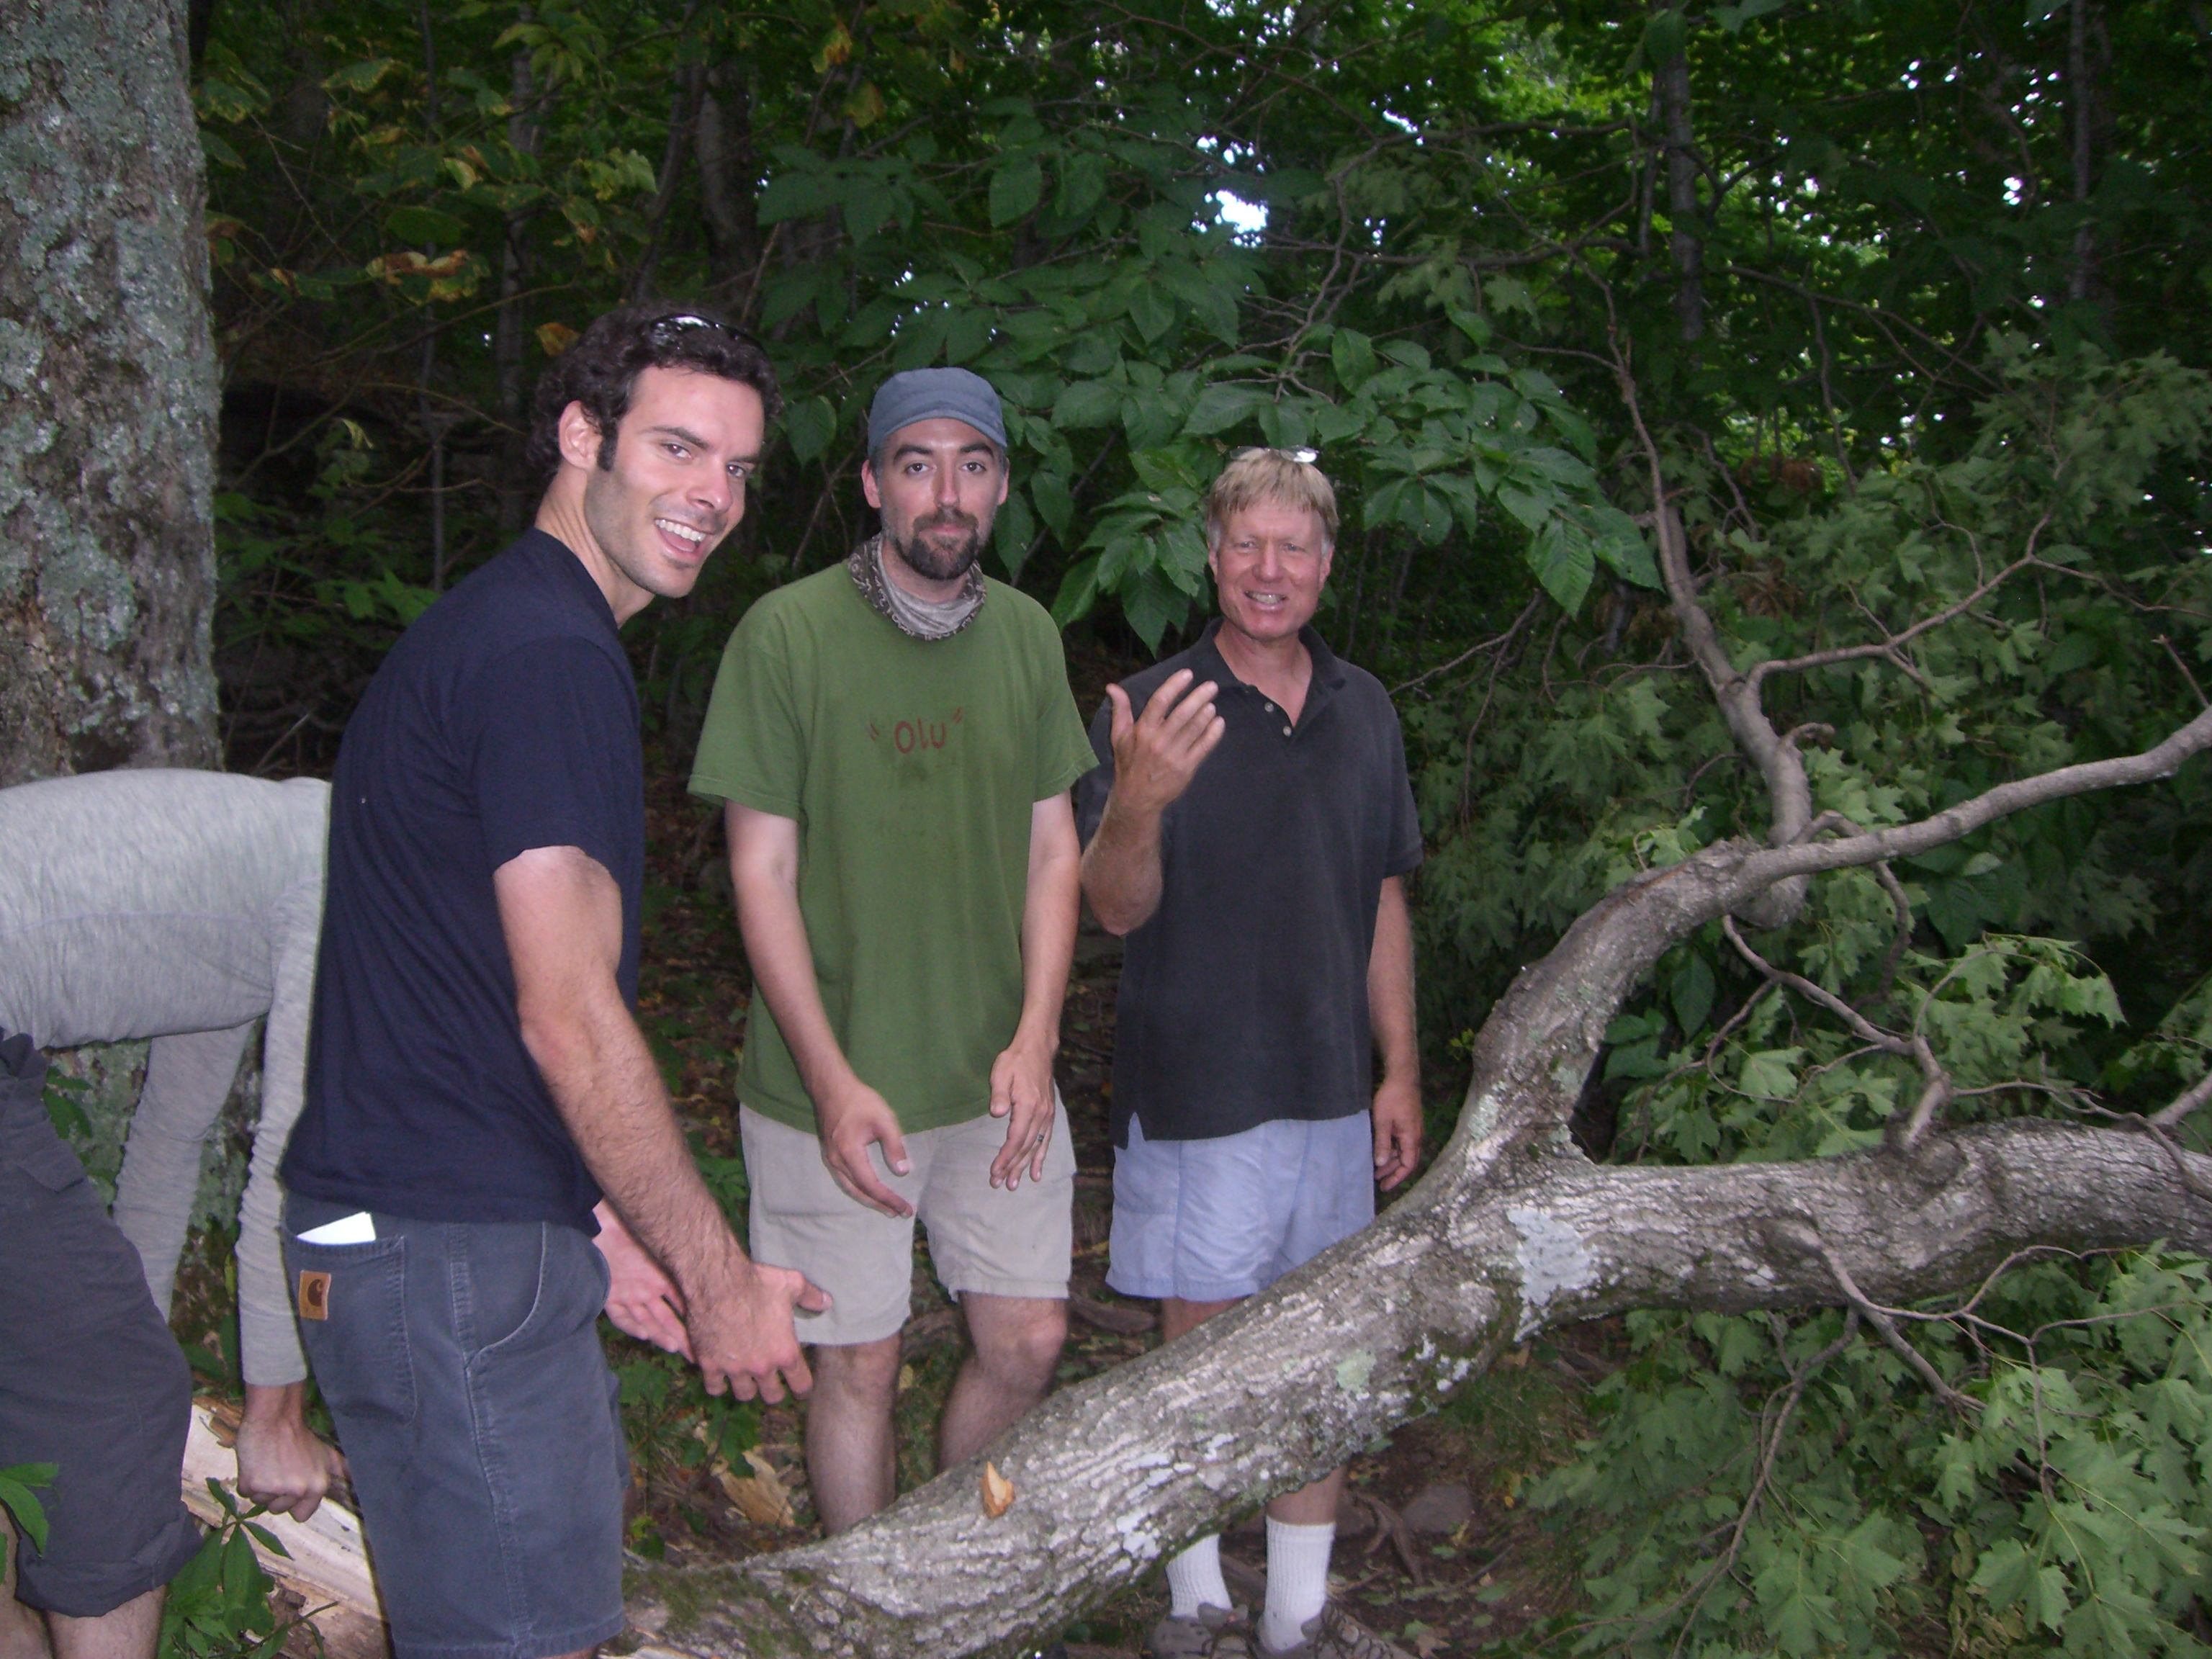 Jim joined by co-workers and friends, Harry Kahn and Patrick Noyes during the 2008 Director's Retreat held in the Catskills.